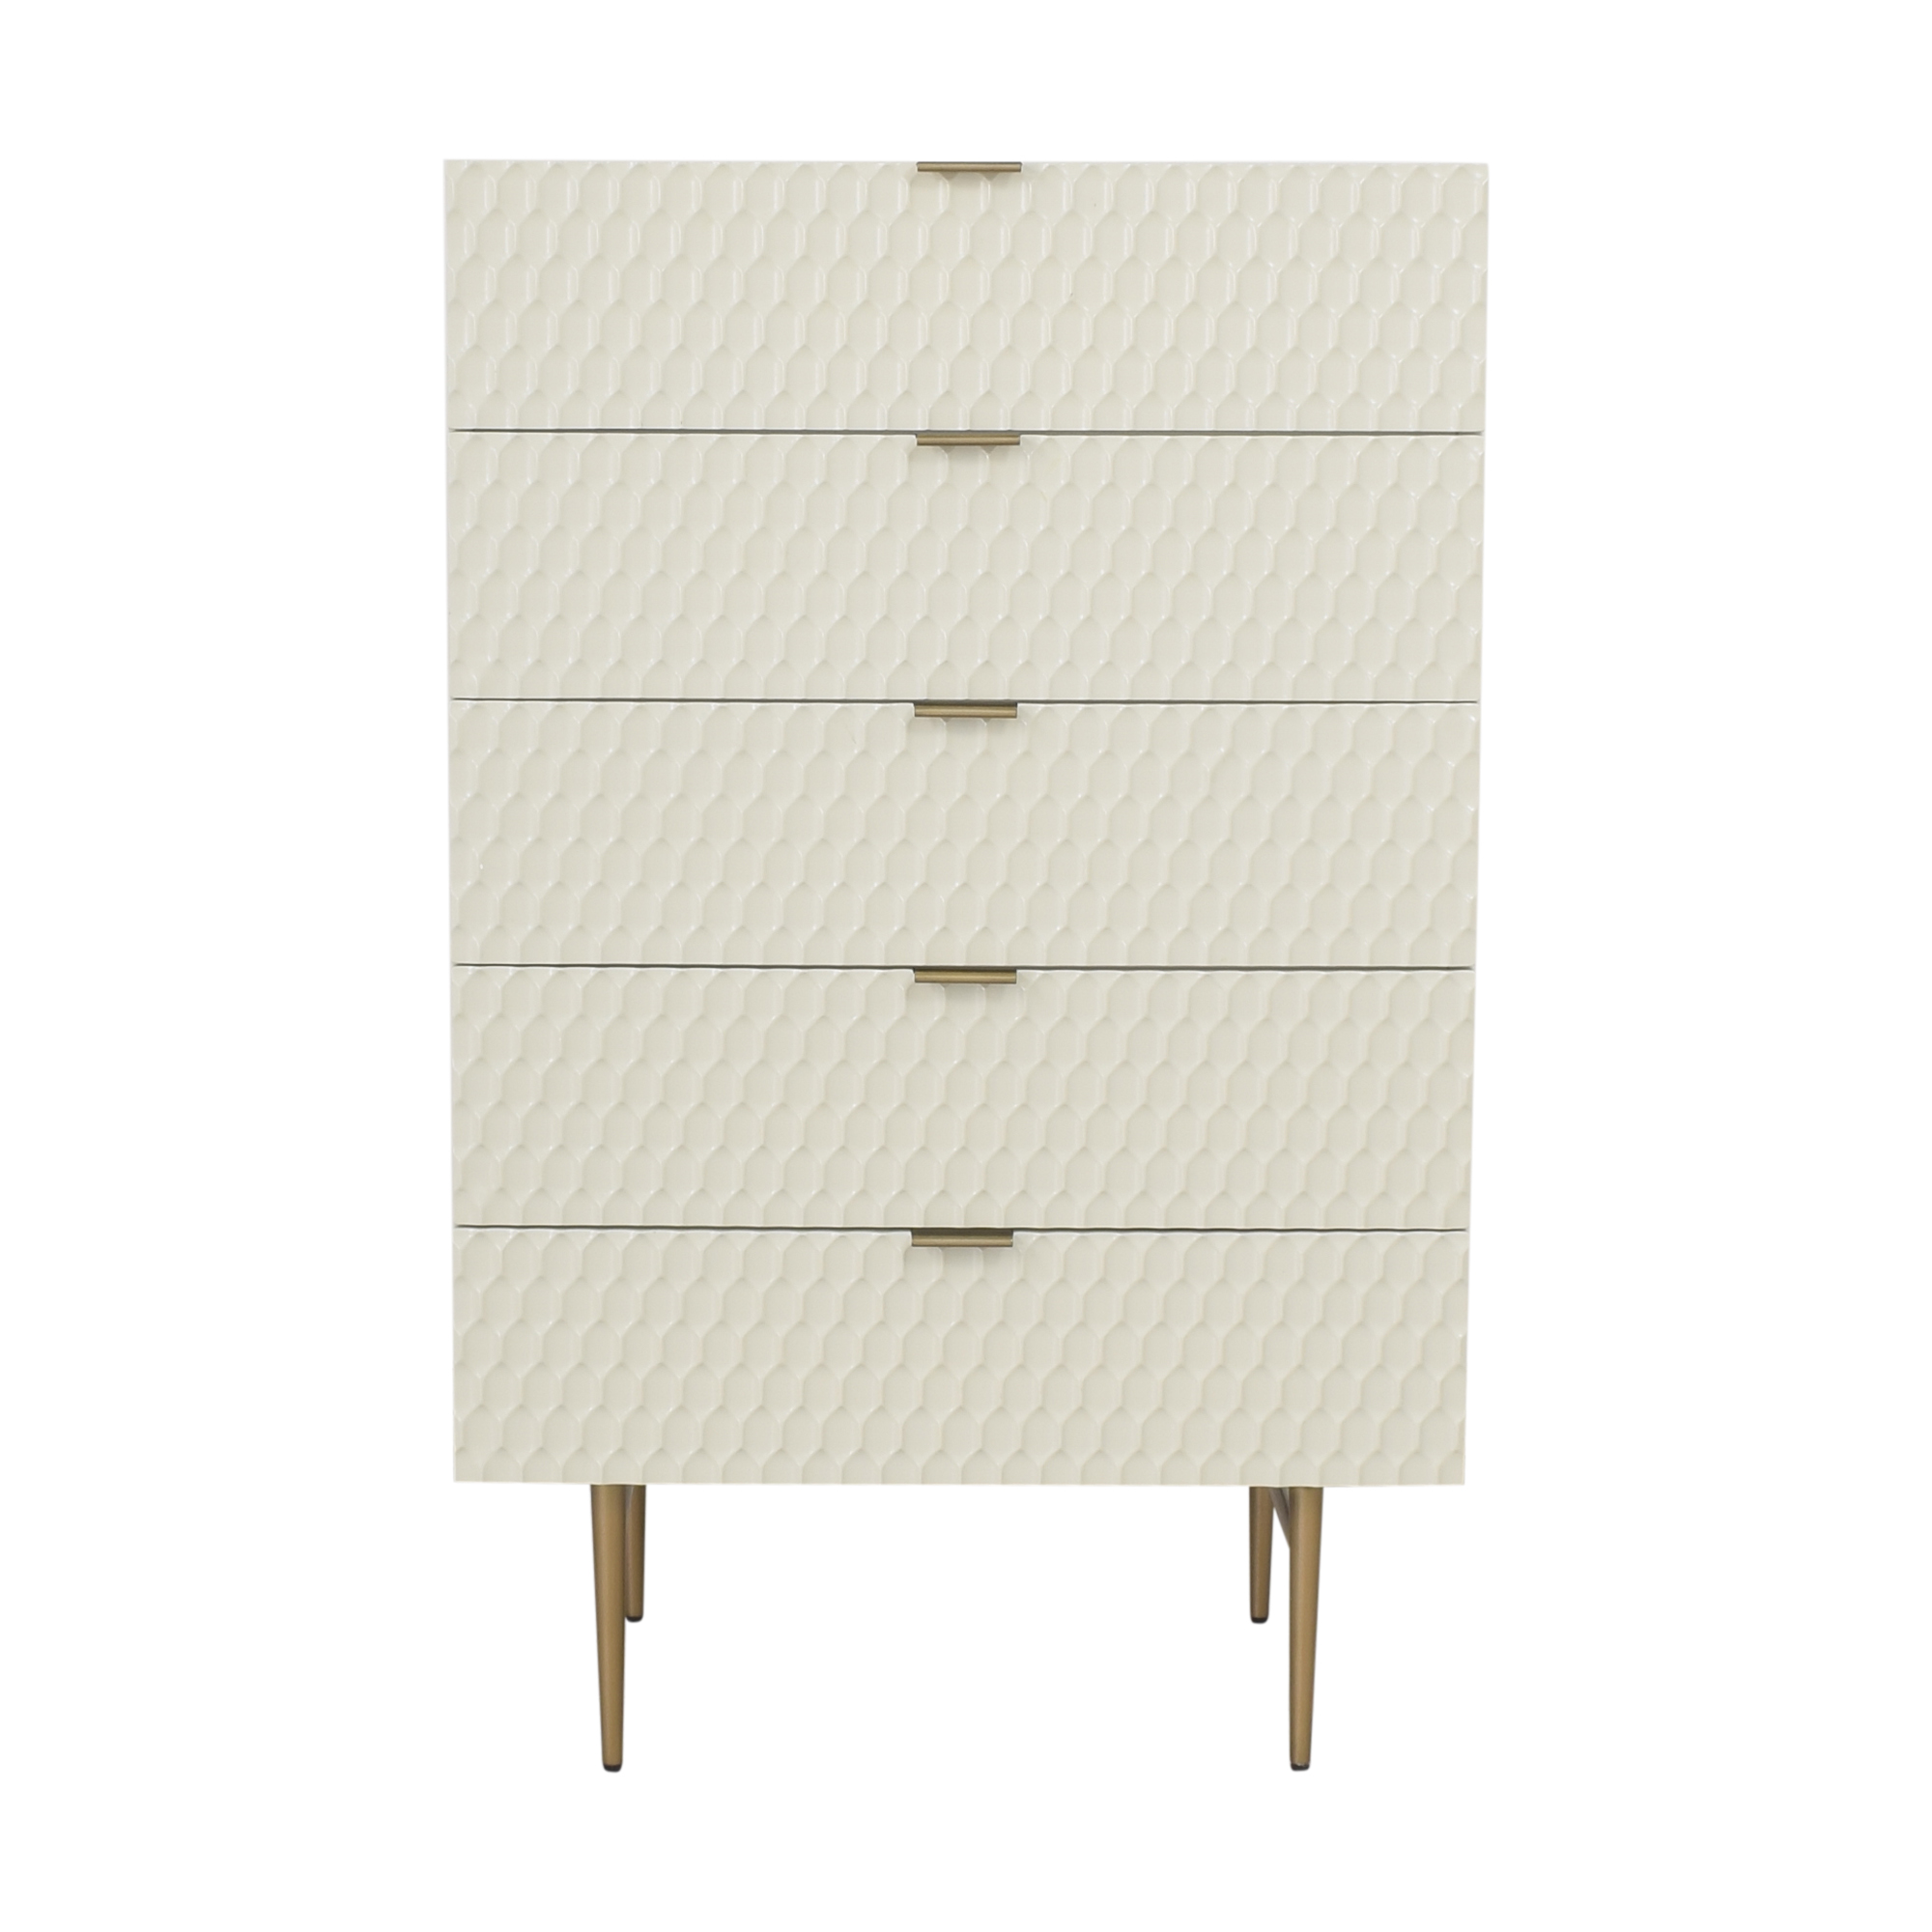 shop West Elm Audrey Five Drawer Dresser West Elm Dressers